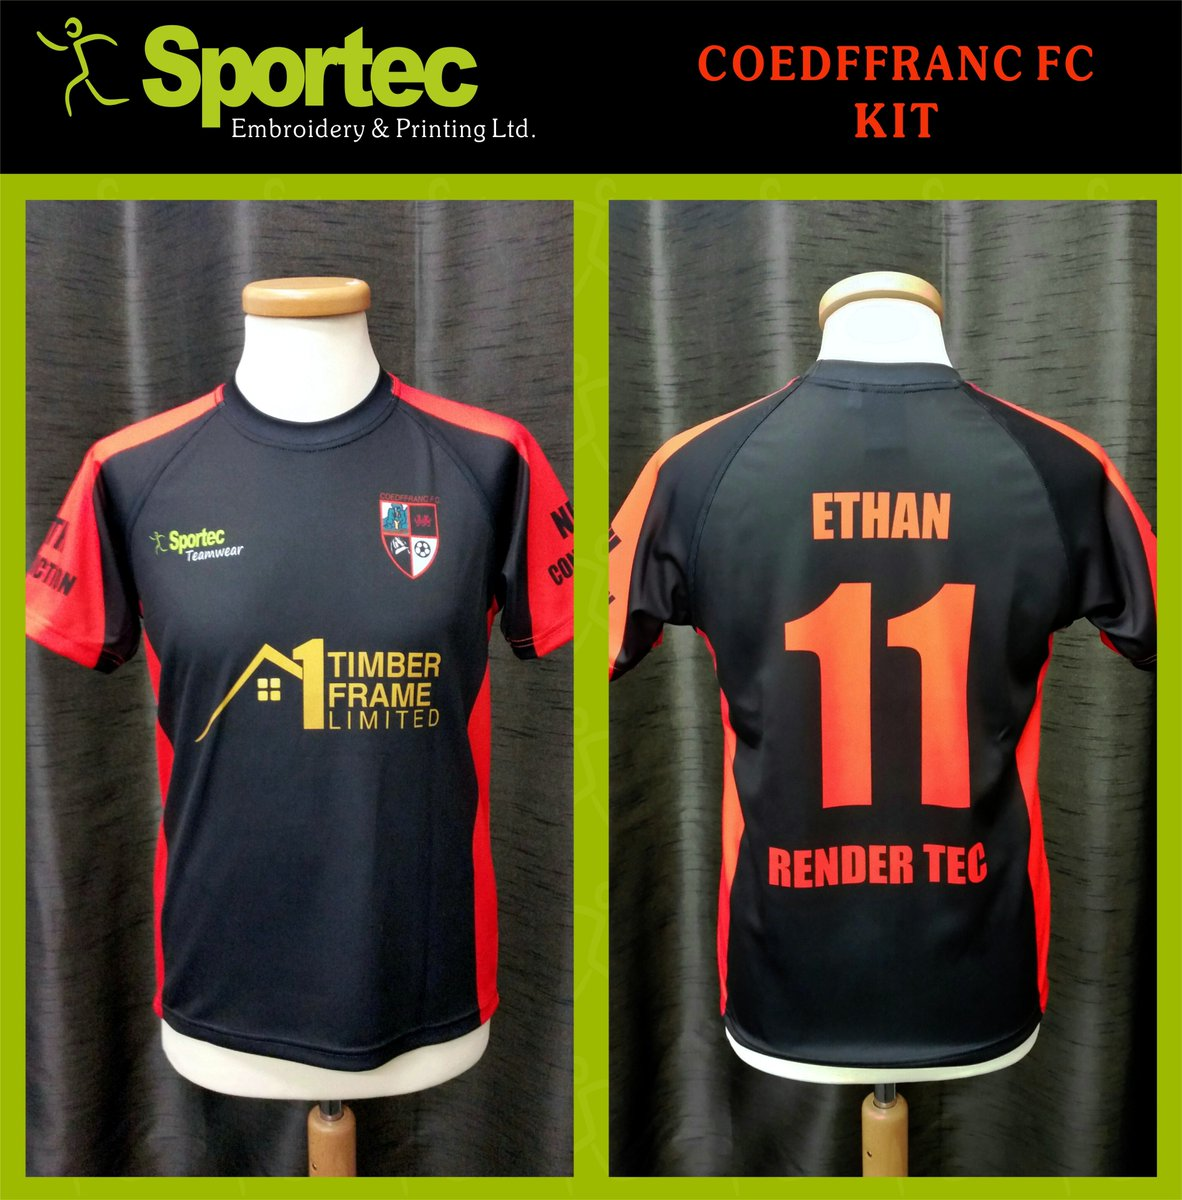 Latest Football Kit, manufactured for Coedffranc FC  #Football #Sport #Jersey #Teamwear #kit #game #sublimation<br>http://pic.twitter.com/rJx0pasK4B